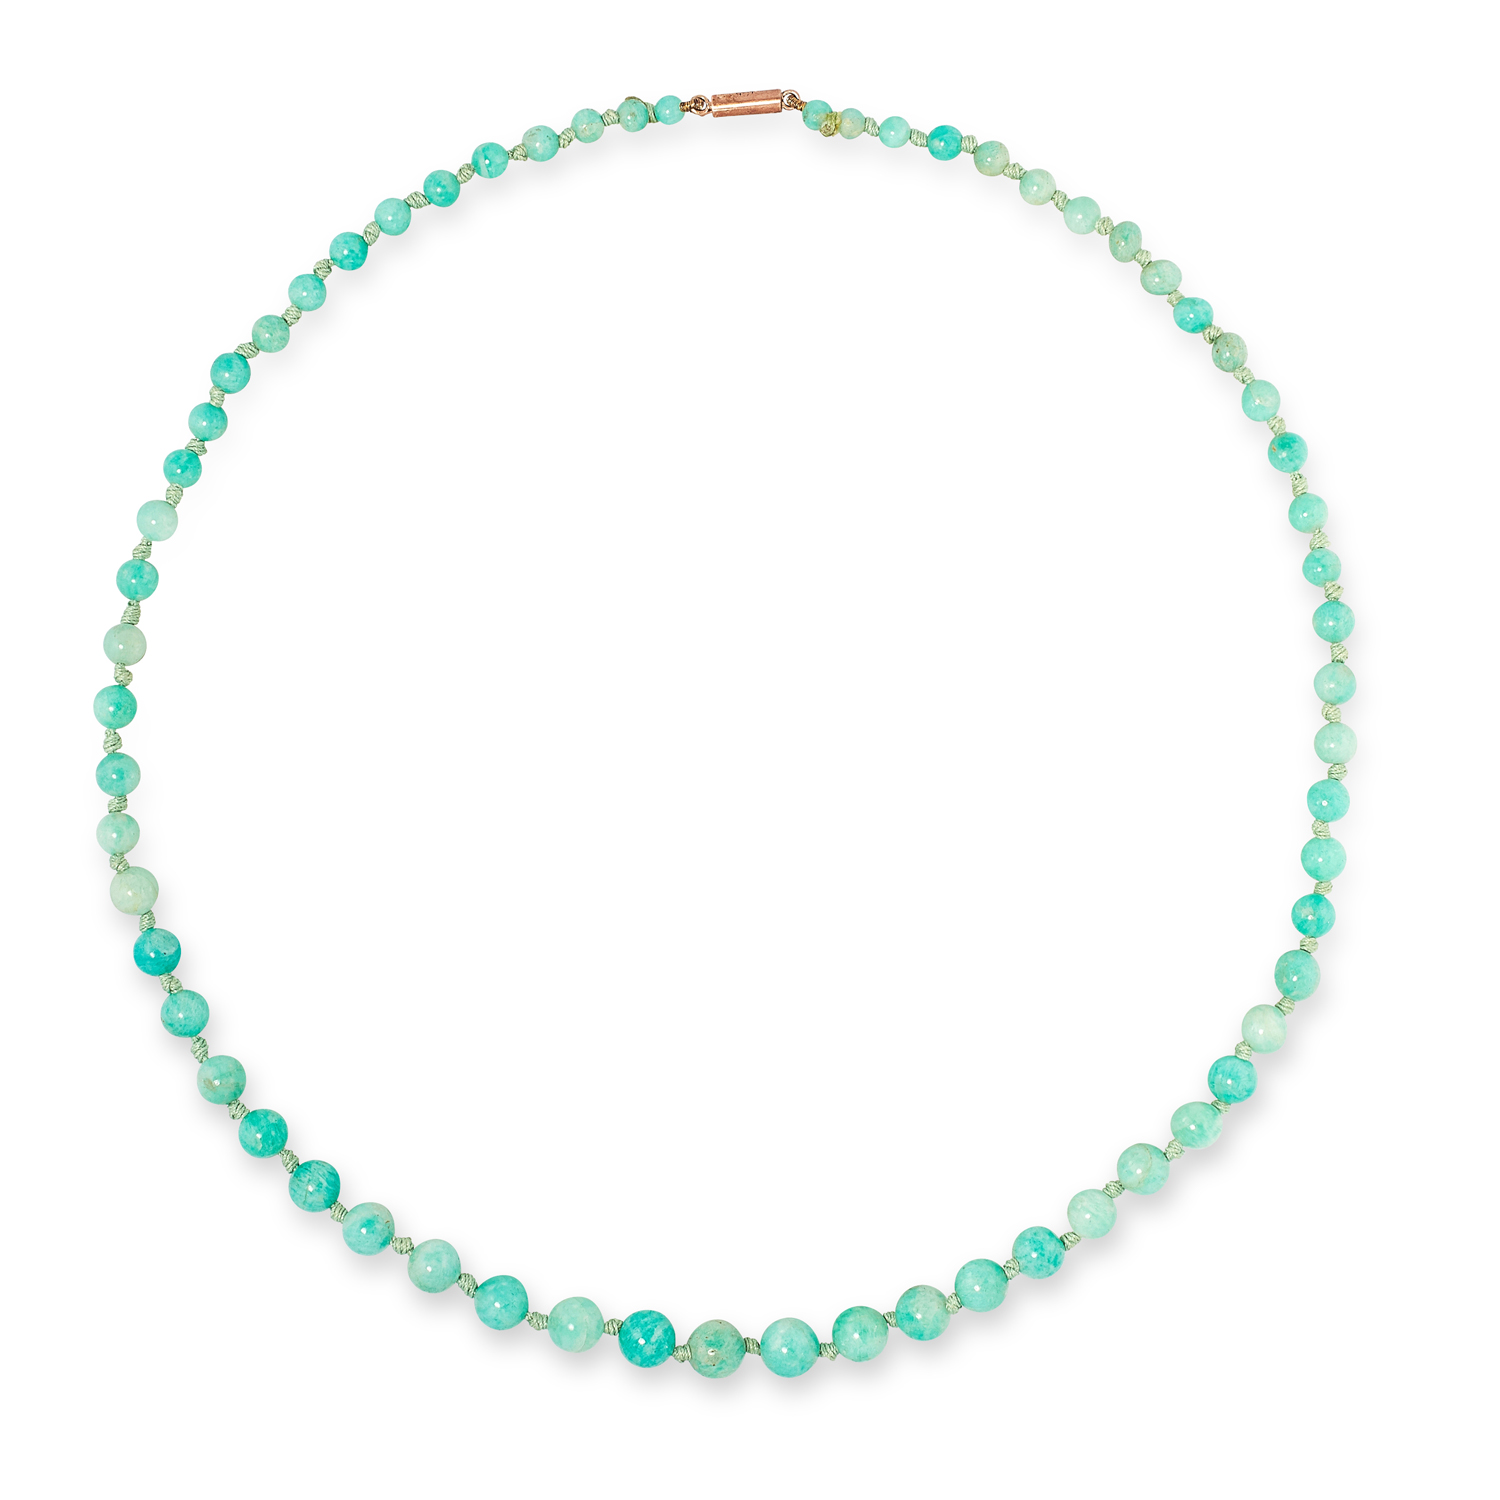 A JADE BEAD NECKLACE comprising of a single row of graduated jade beads, 46cm, 13.0g.